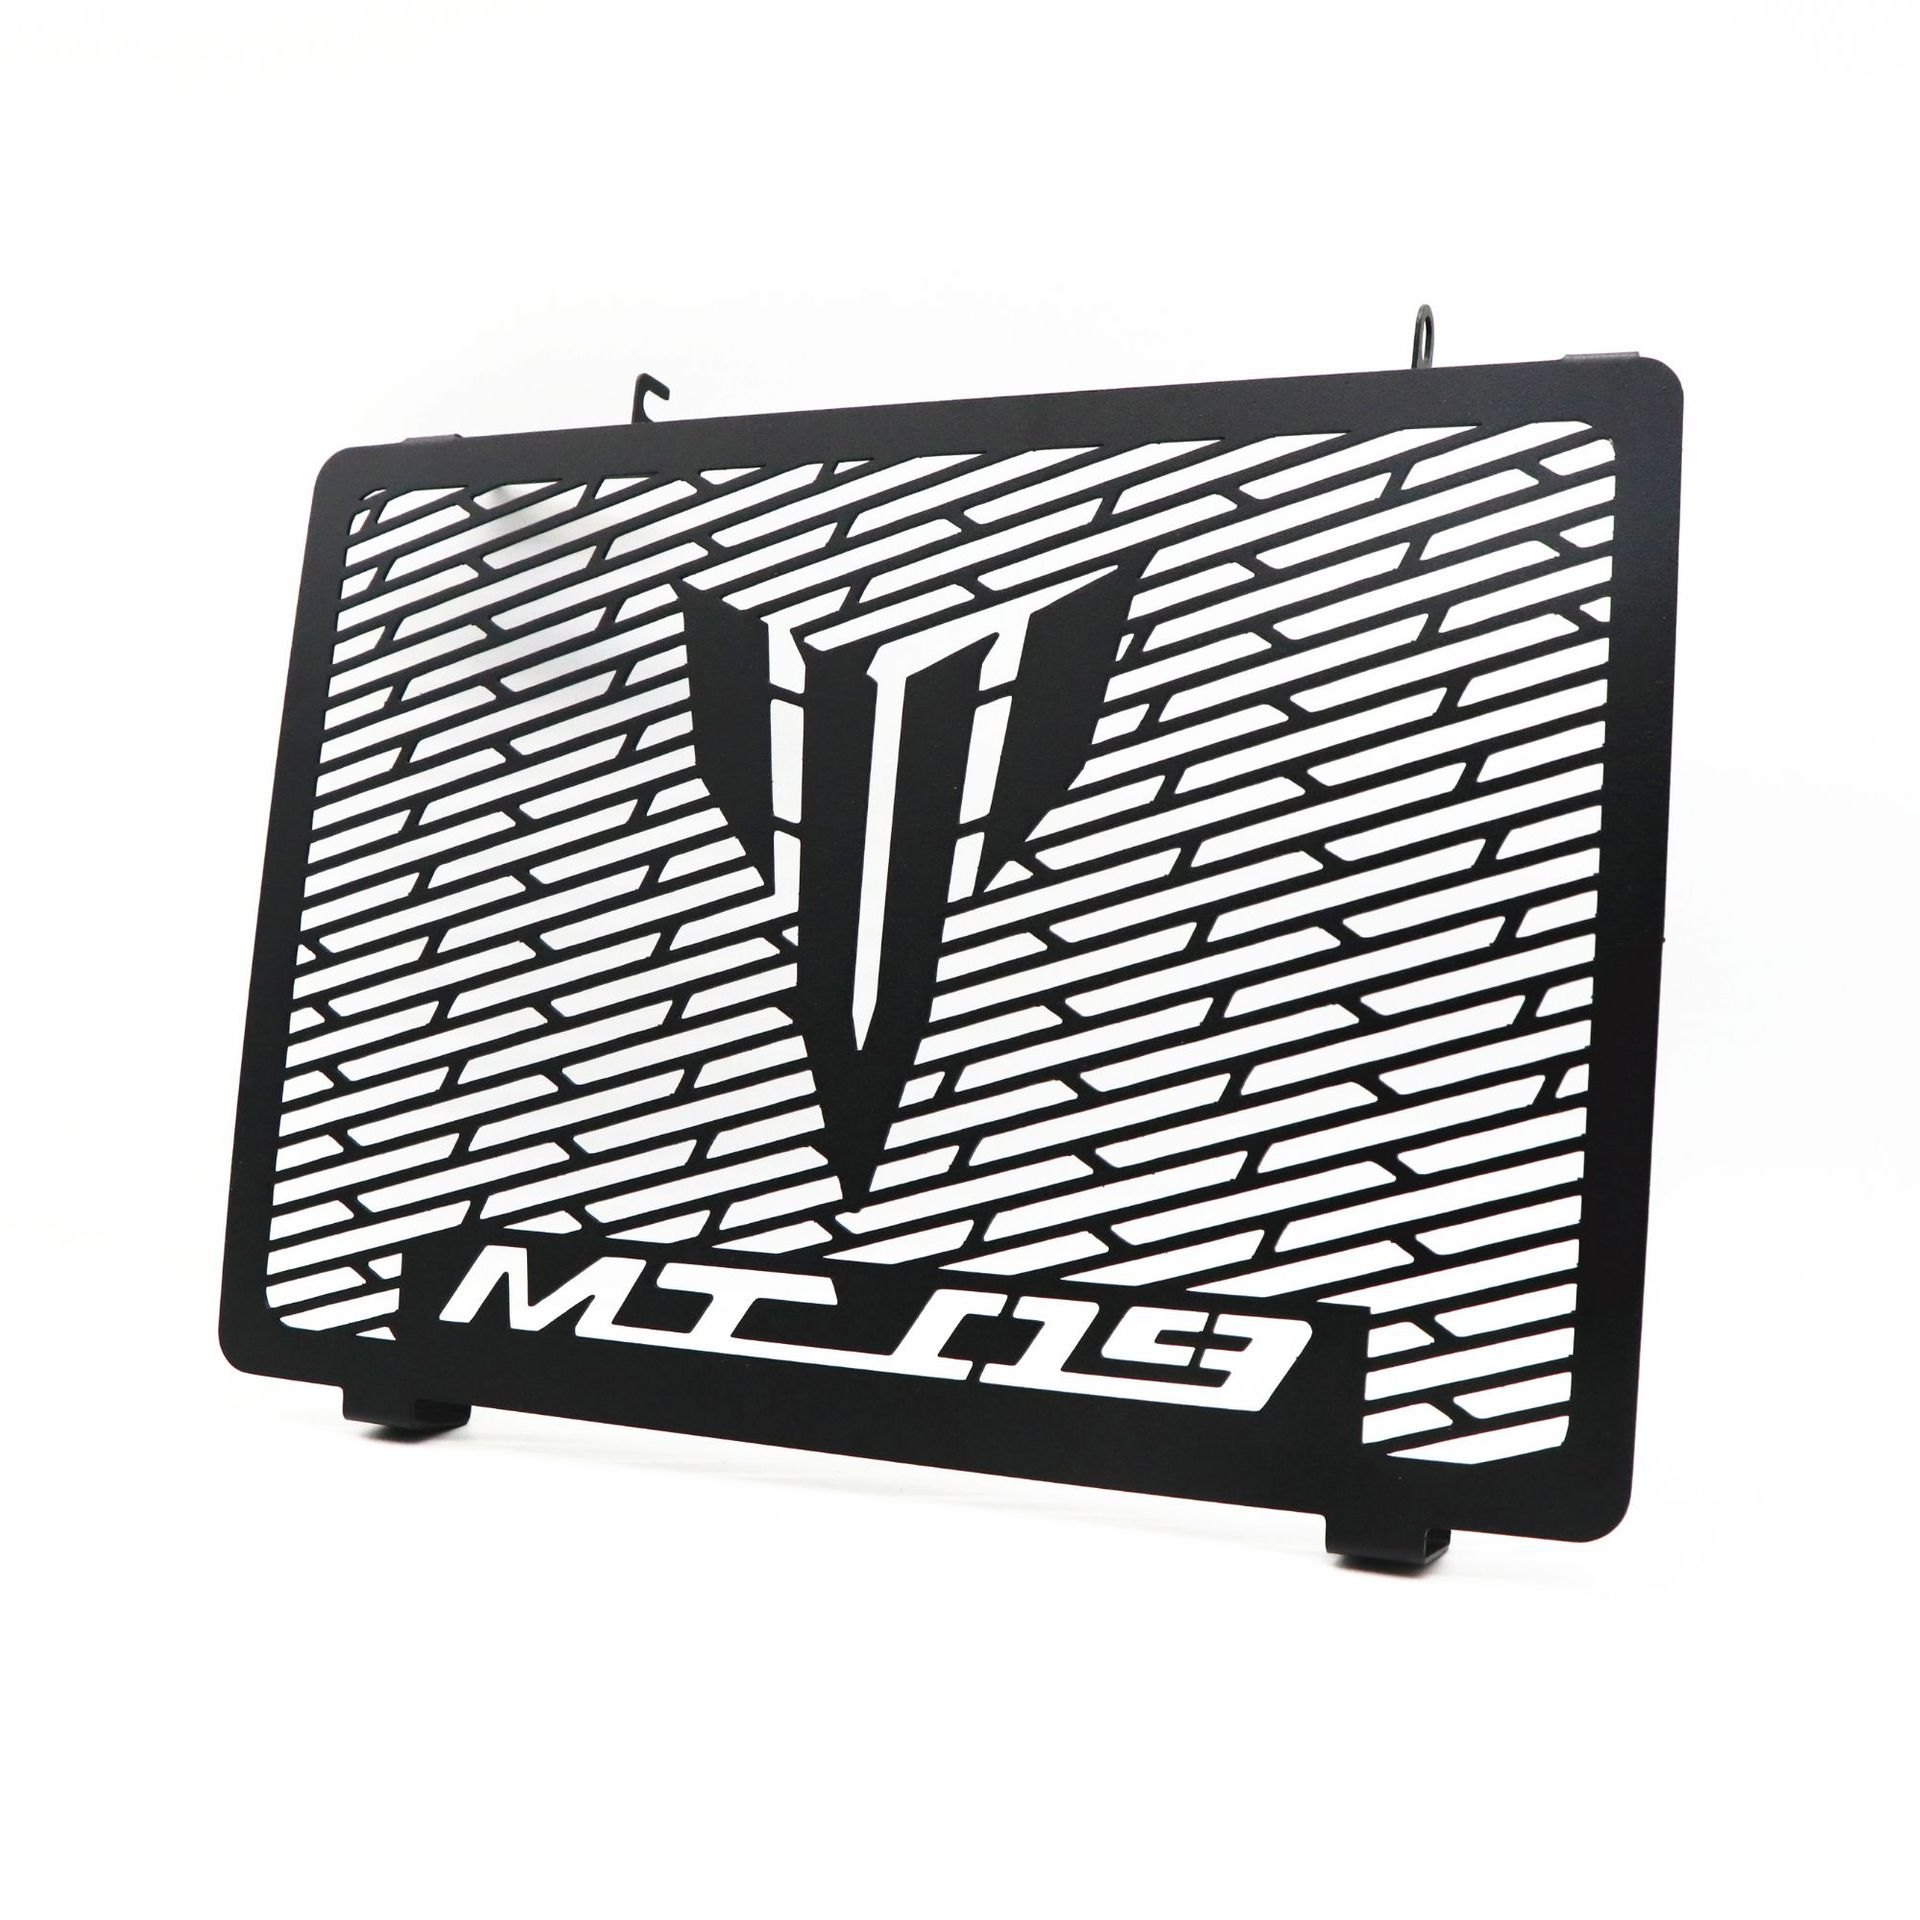 Stainless Steel Motorcycle Radiator Guard Radiator Cover Fits For Yamaha MT-09 MT09 14-17 black